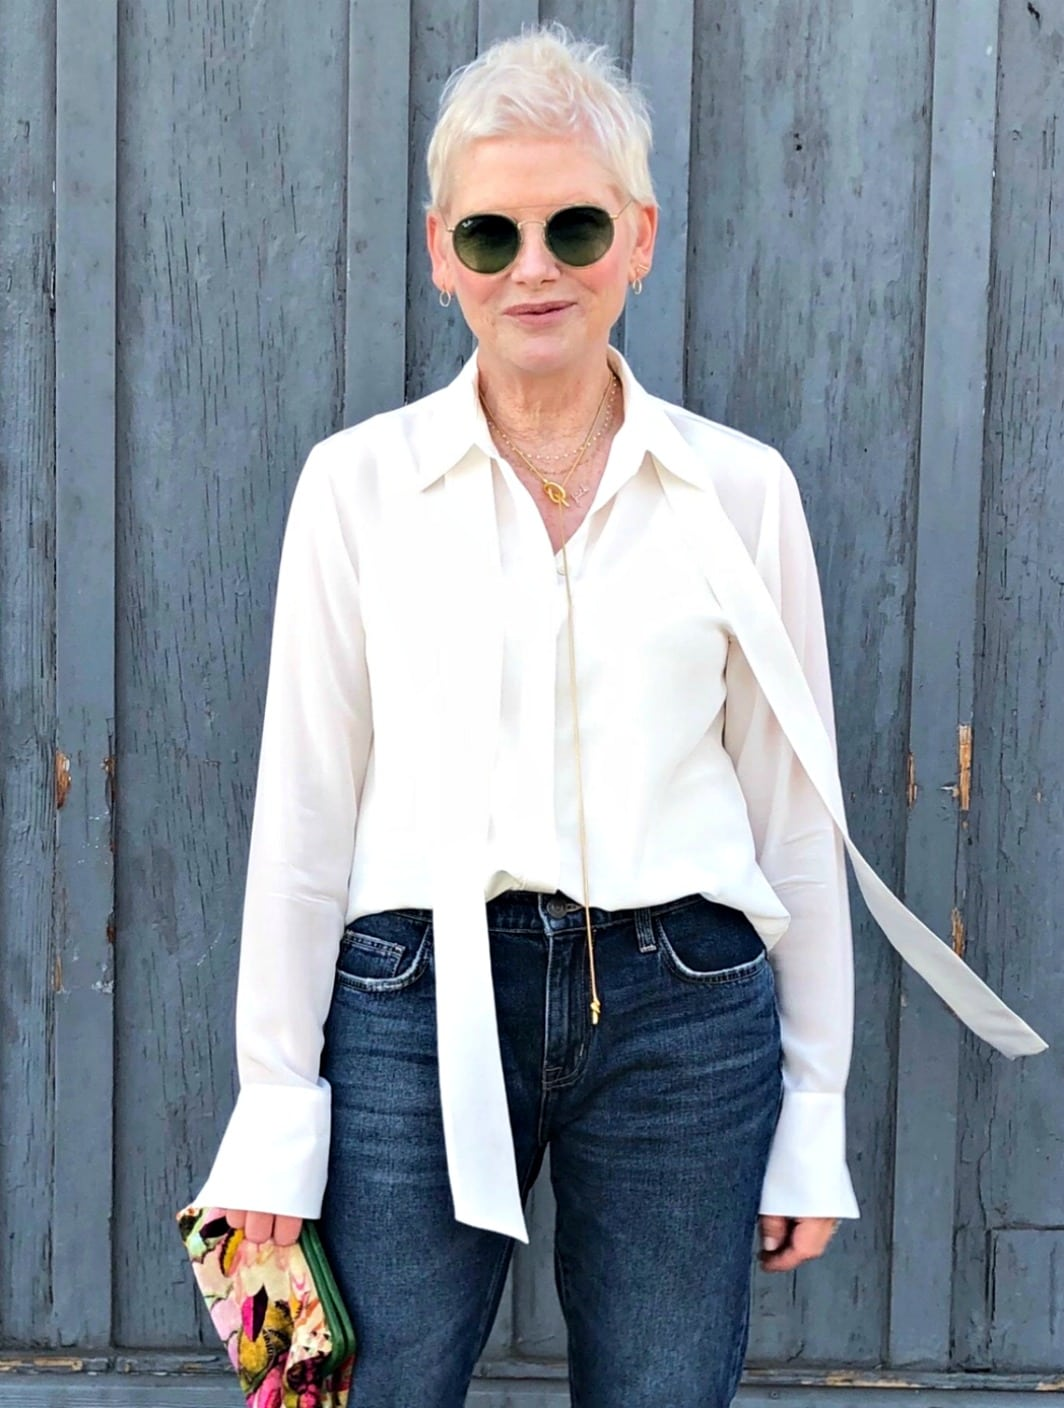 woman in white shirt and blue jeans